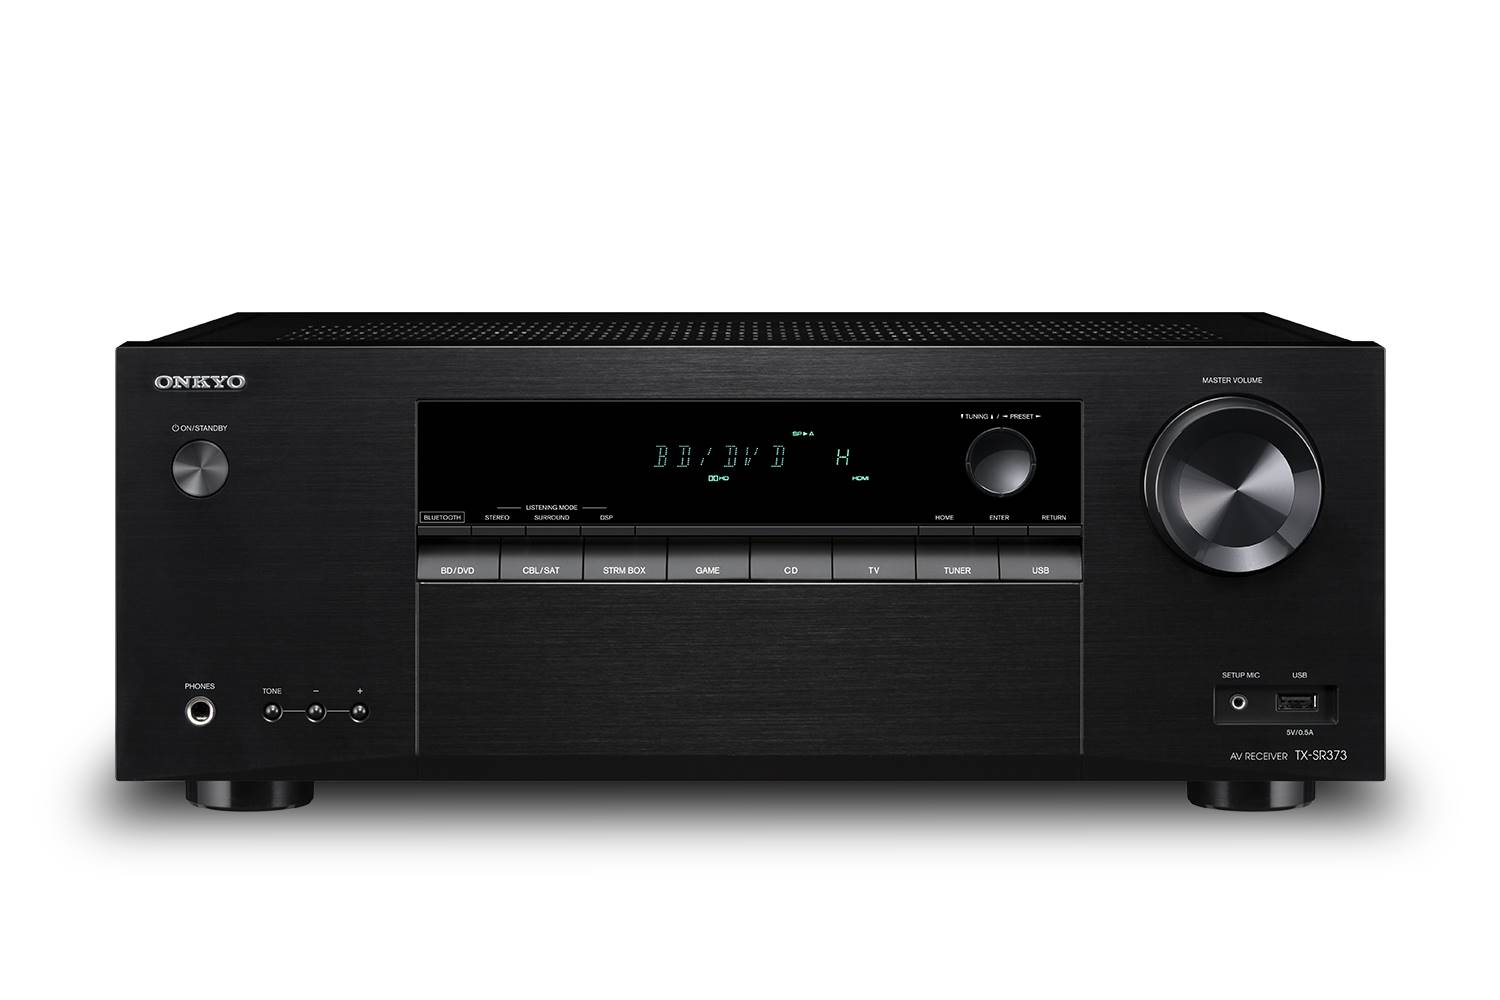 TX-SR373 ONKYO 5.2CH 155W A/V Receiver with Dolby TrueHD and DTS-HD Master Audio Decoding, HDMI 4in/1out (HDR / HDCP 2.2), AccuEQ Room Acoustic Calibration, Bluetooth Connectivity with Qualcomm aptX